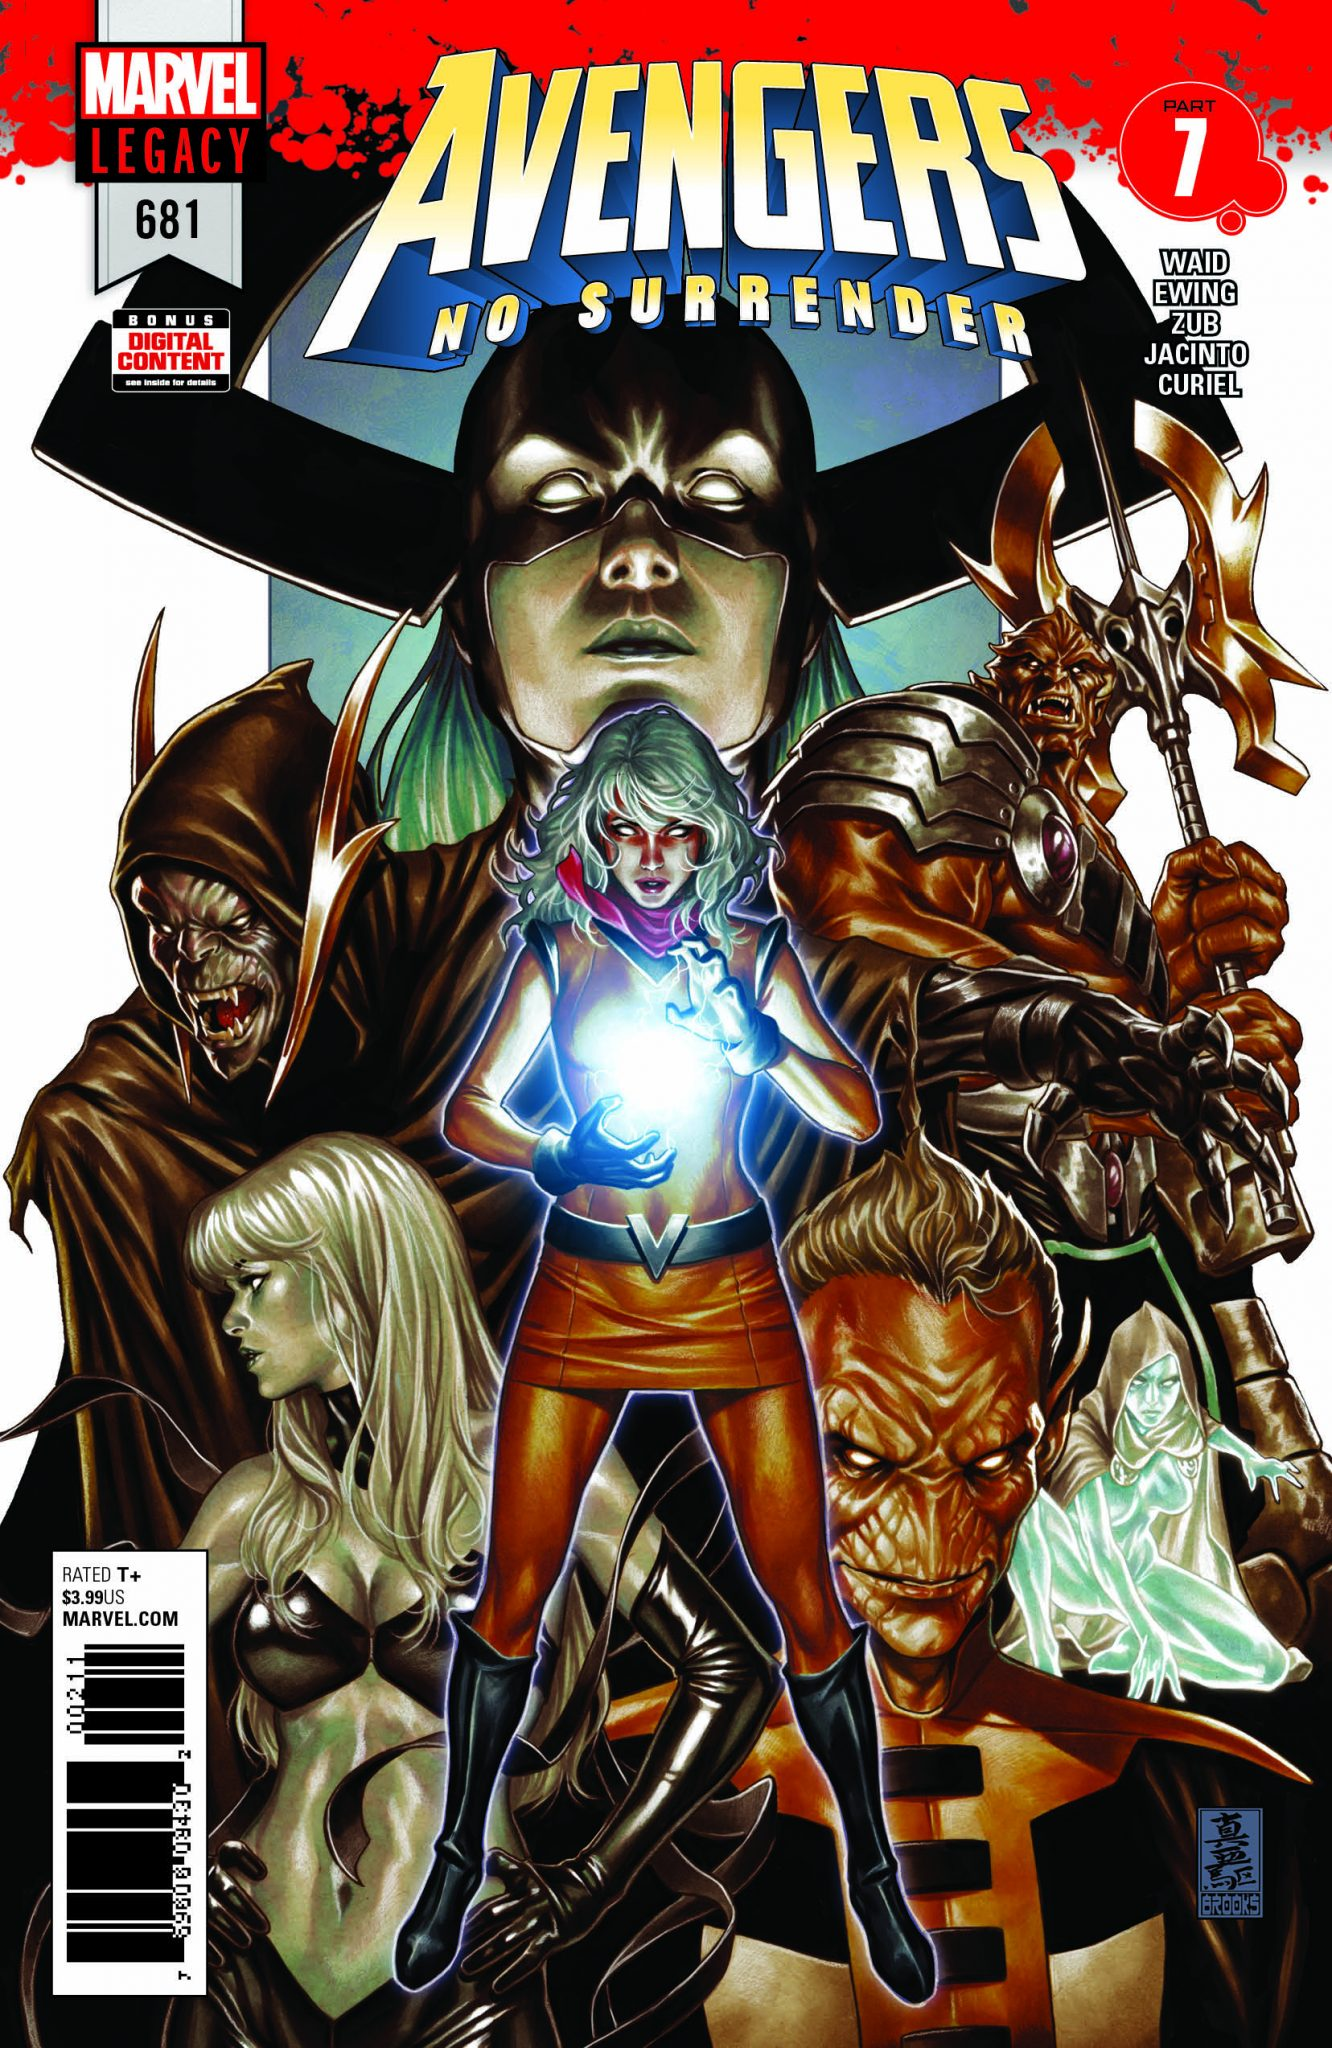 AVENGERS: NO SURRENDER: Second month covers revealed!